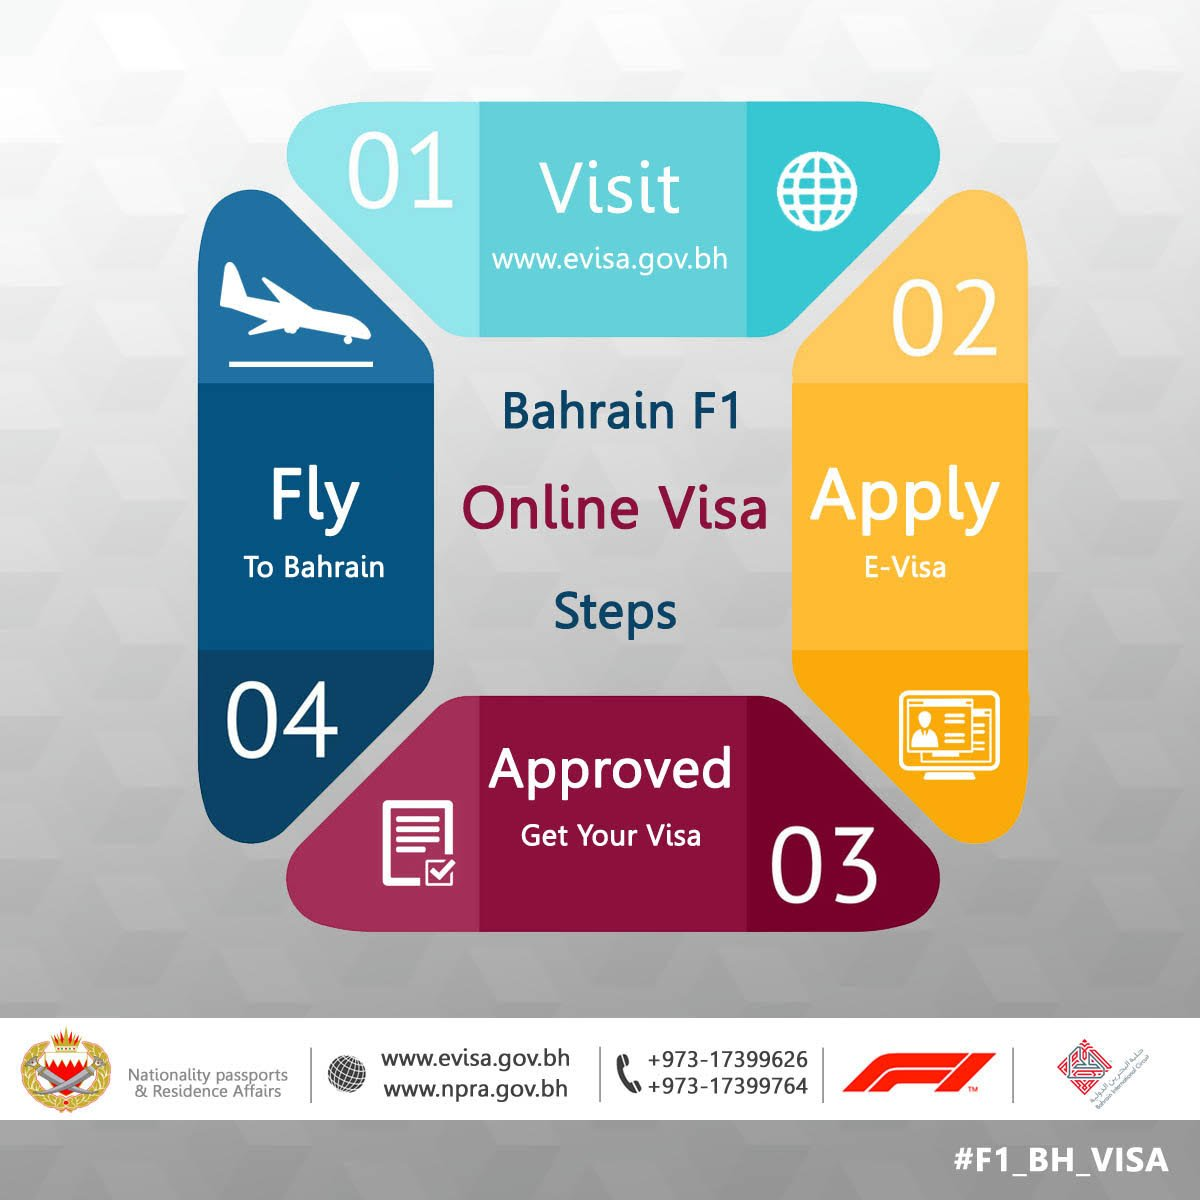 Ministry Of Interior On Twitter Simple Steps Away To Get Your Bahrain F1 Visa Apply Online Now And Receive The Approval In Your Mailbox Welcome To The Kingdom Of Bahrain 973 17399765 Https T Co Tohraytmky